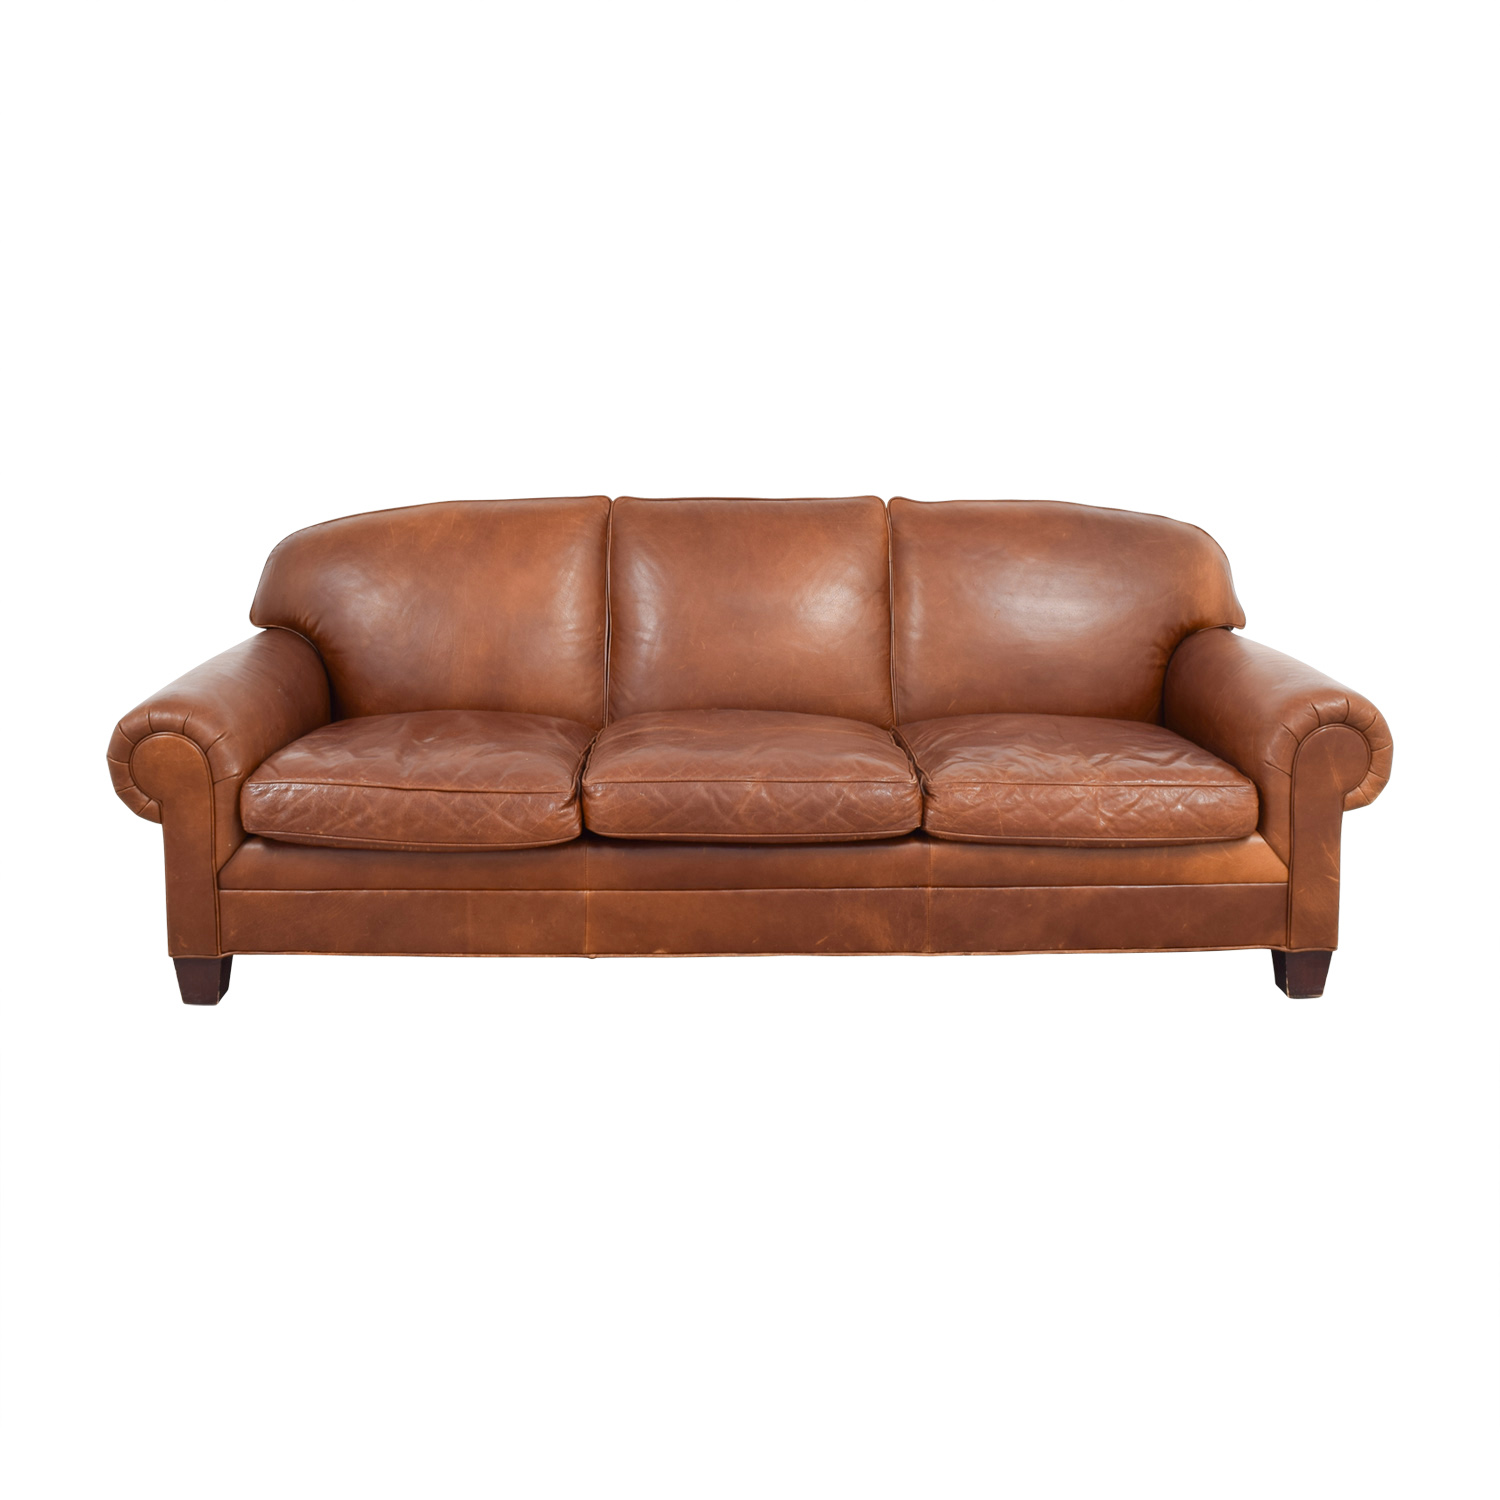 Orange Leather Chair Classic Sofas Used Classic Sofas For Sale